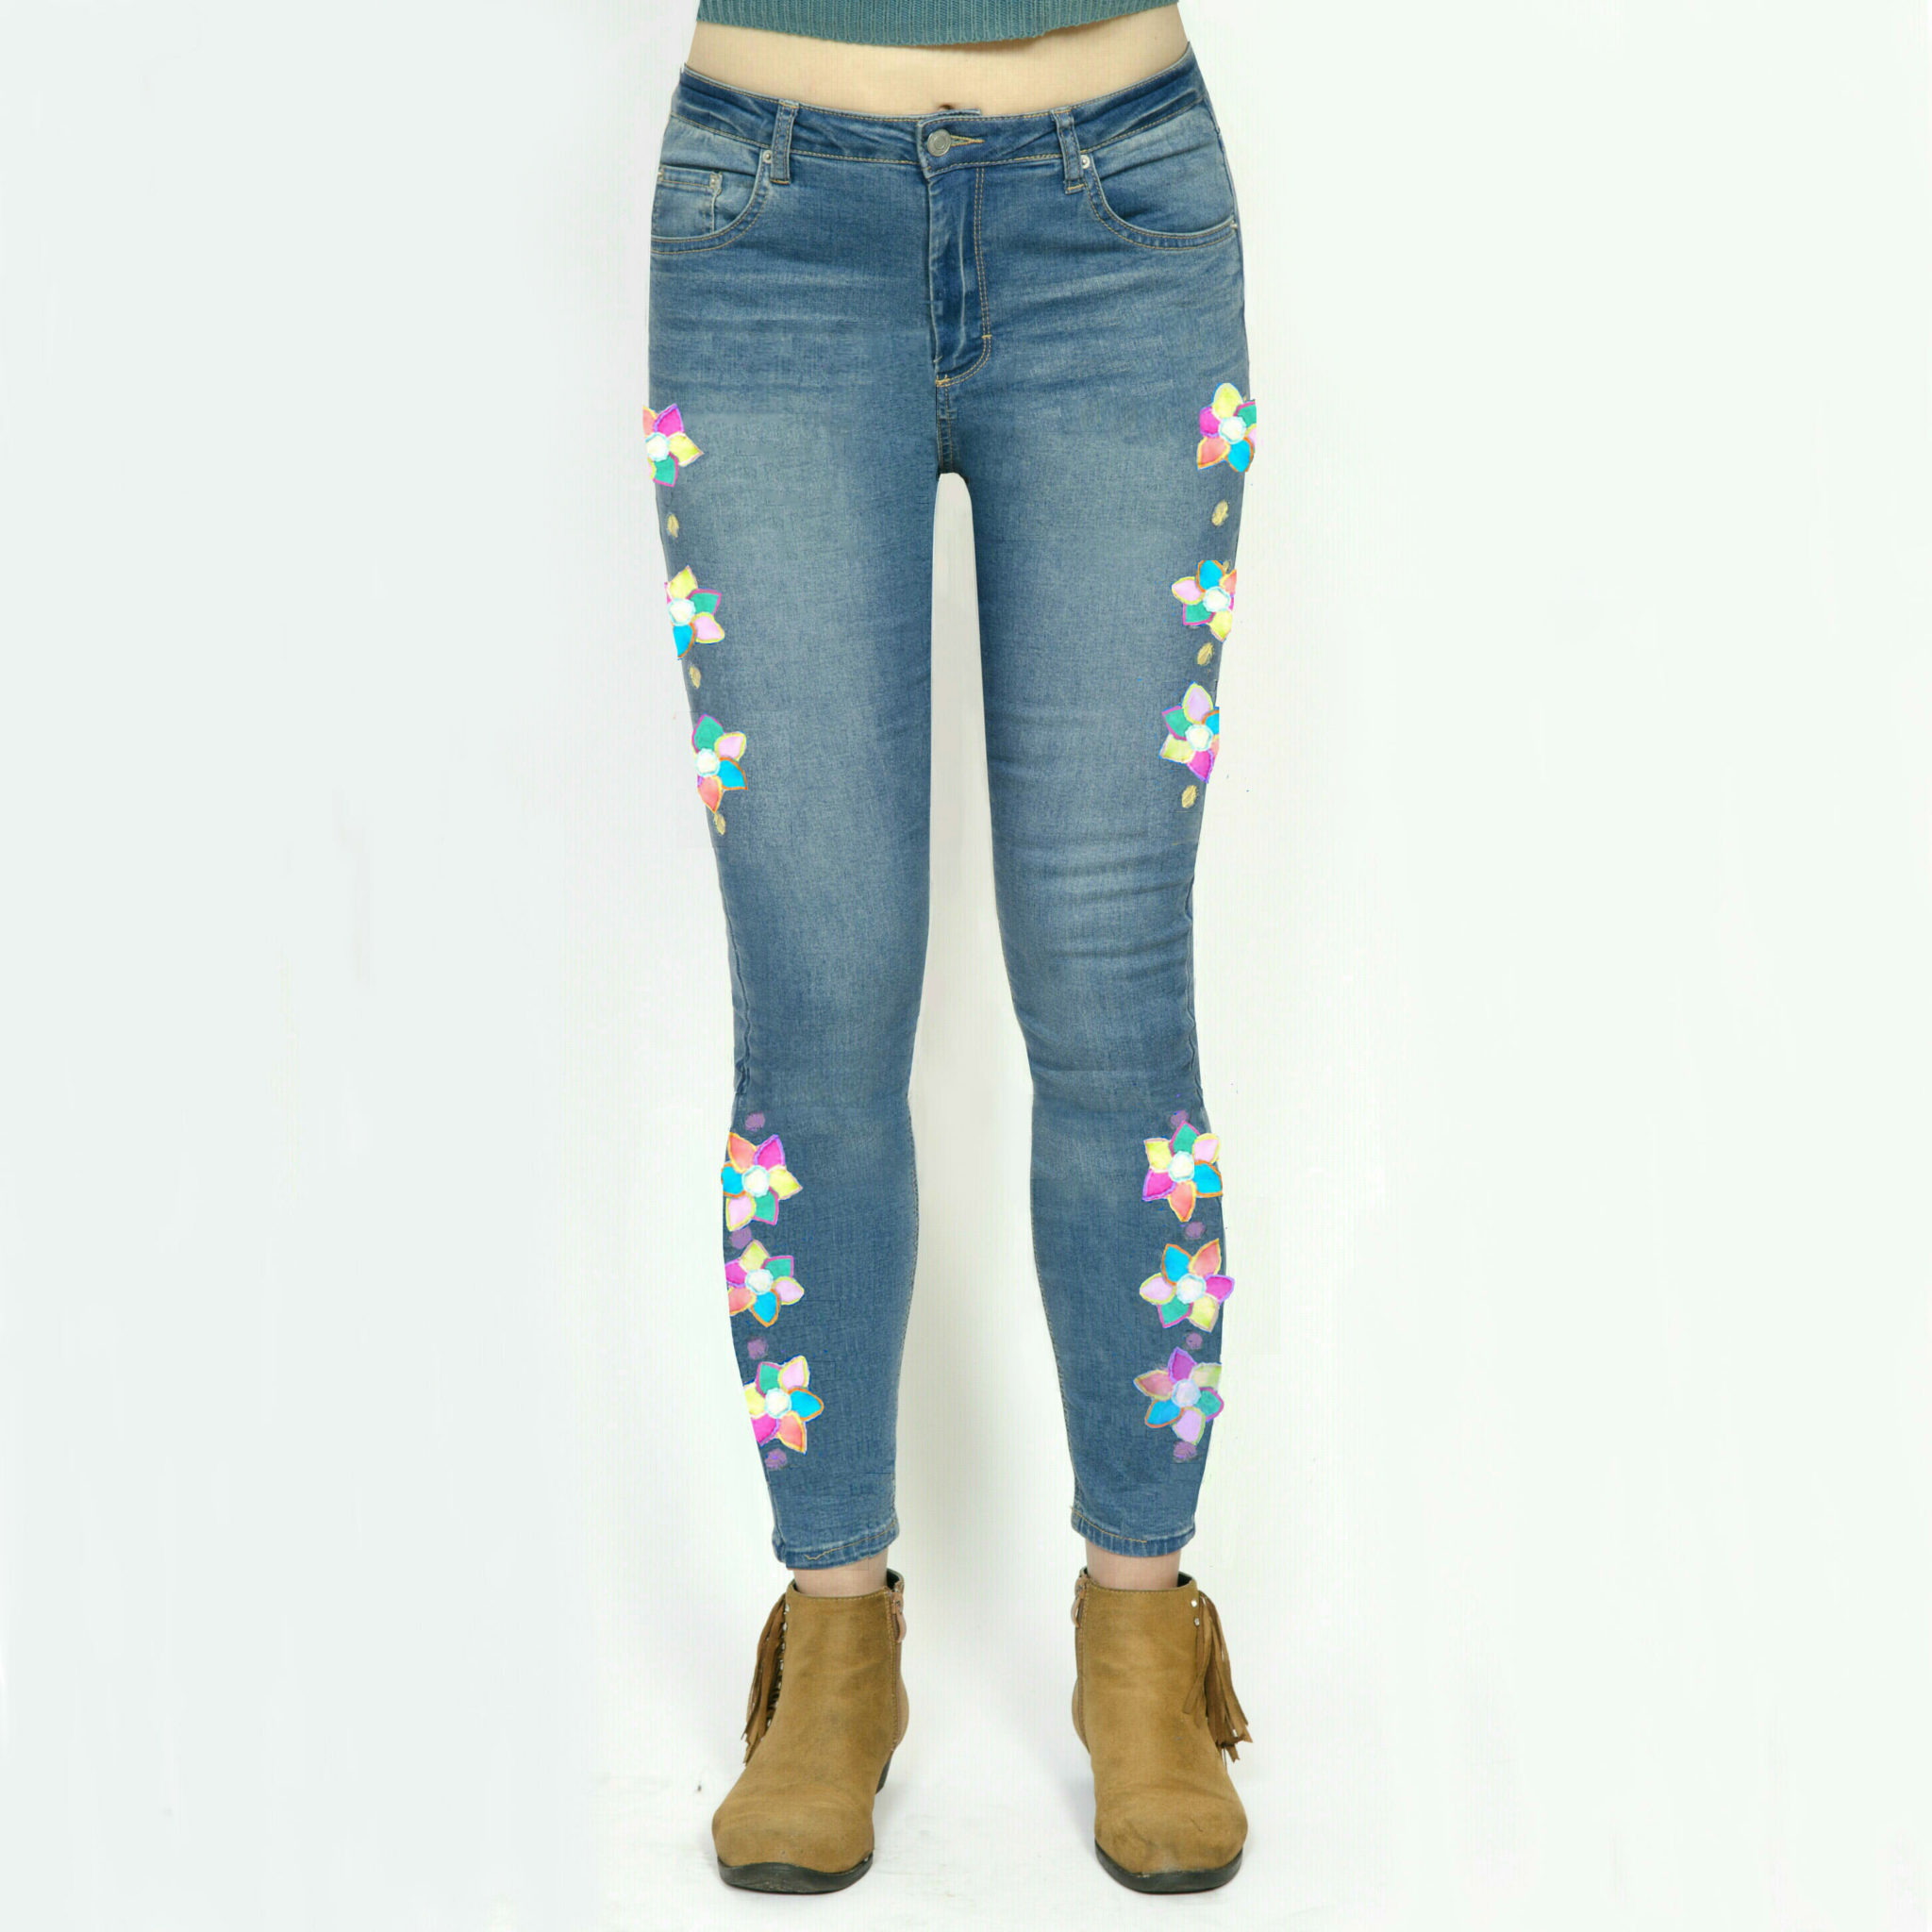 397bf8ff Wonderland Jeans-2,Version-2, Limited Product ! - Lys Majesty, Trendy new  Jeans trousers